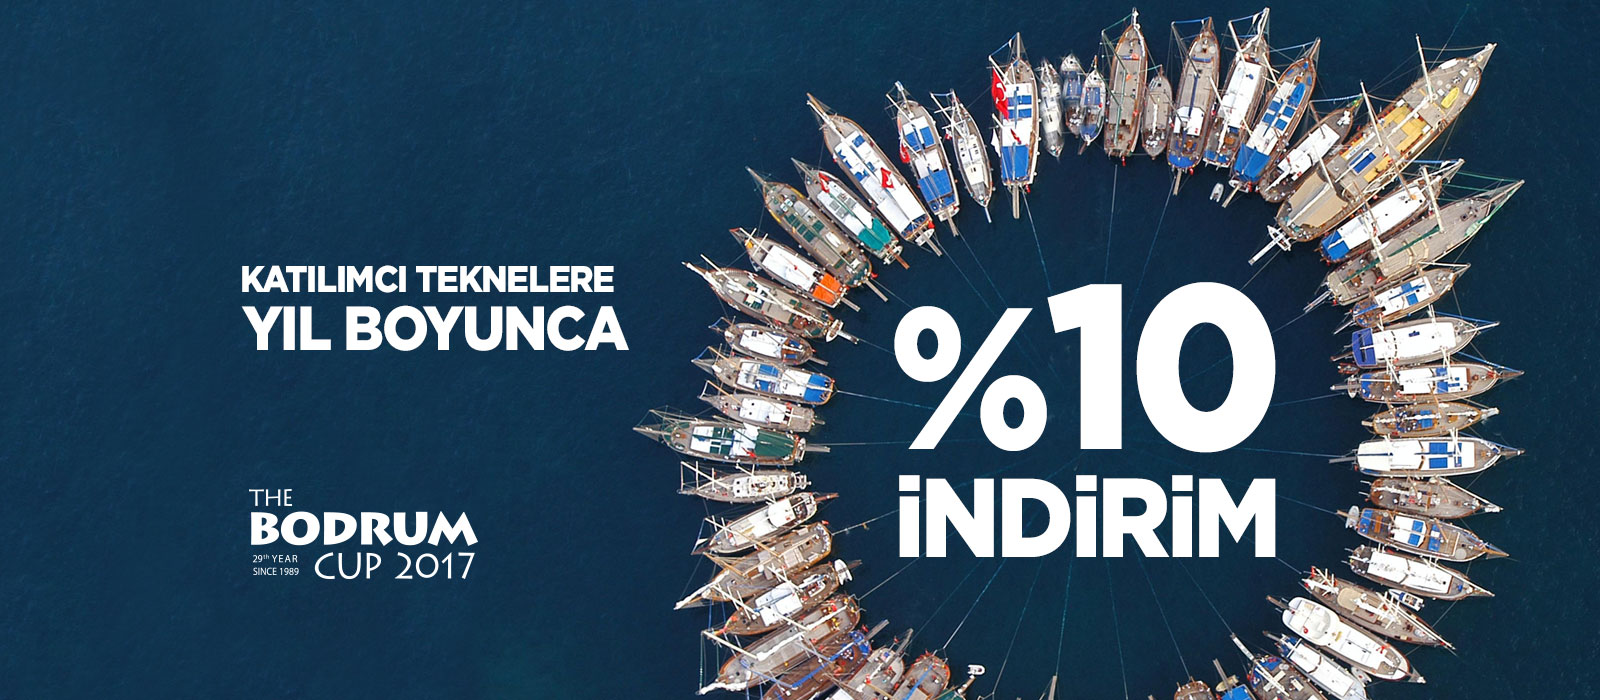 The Bodrum Cup